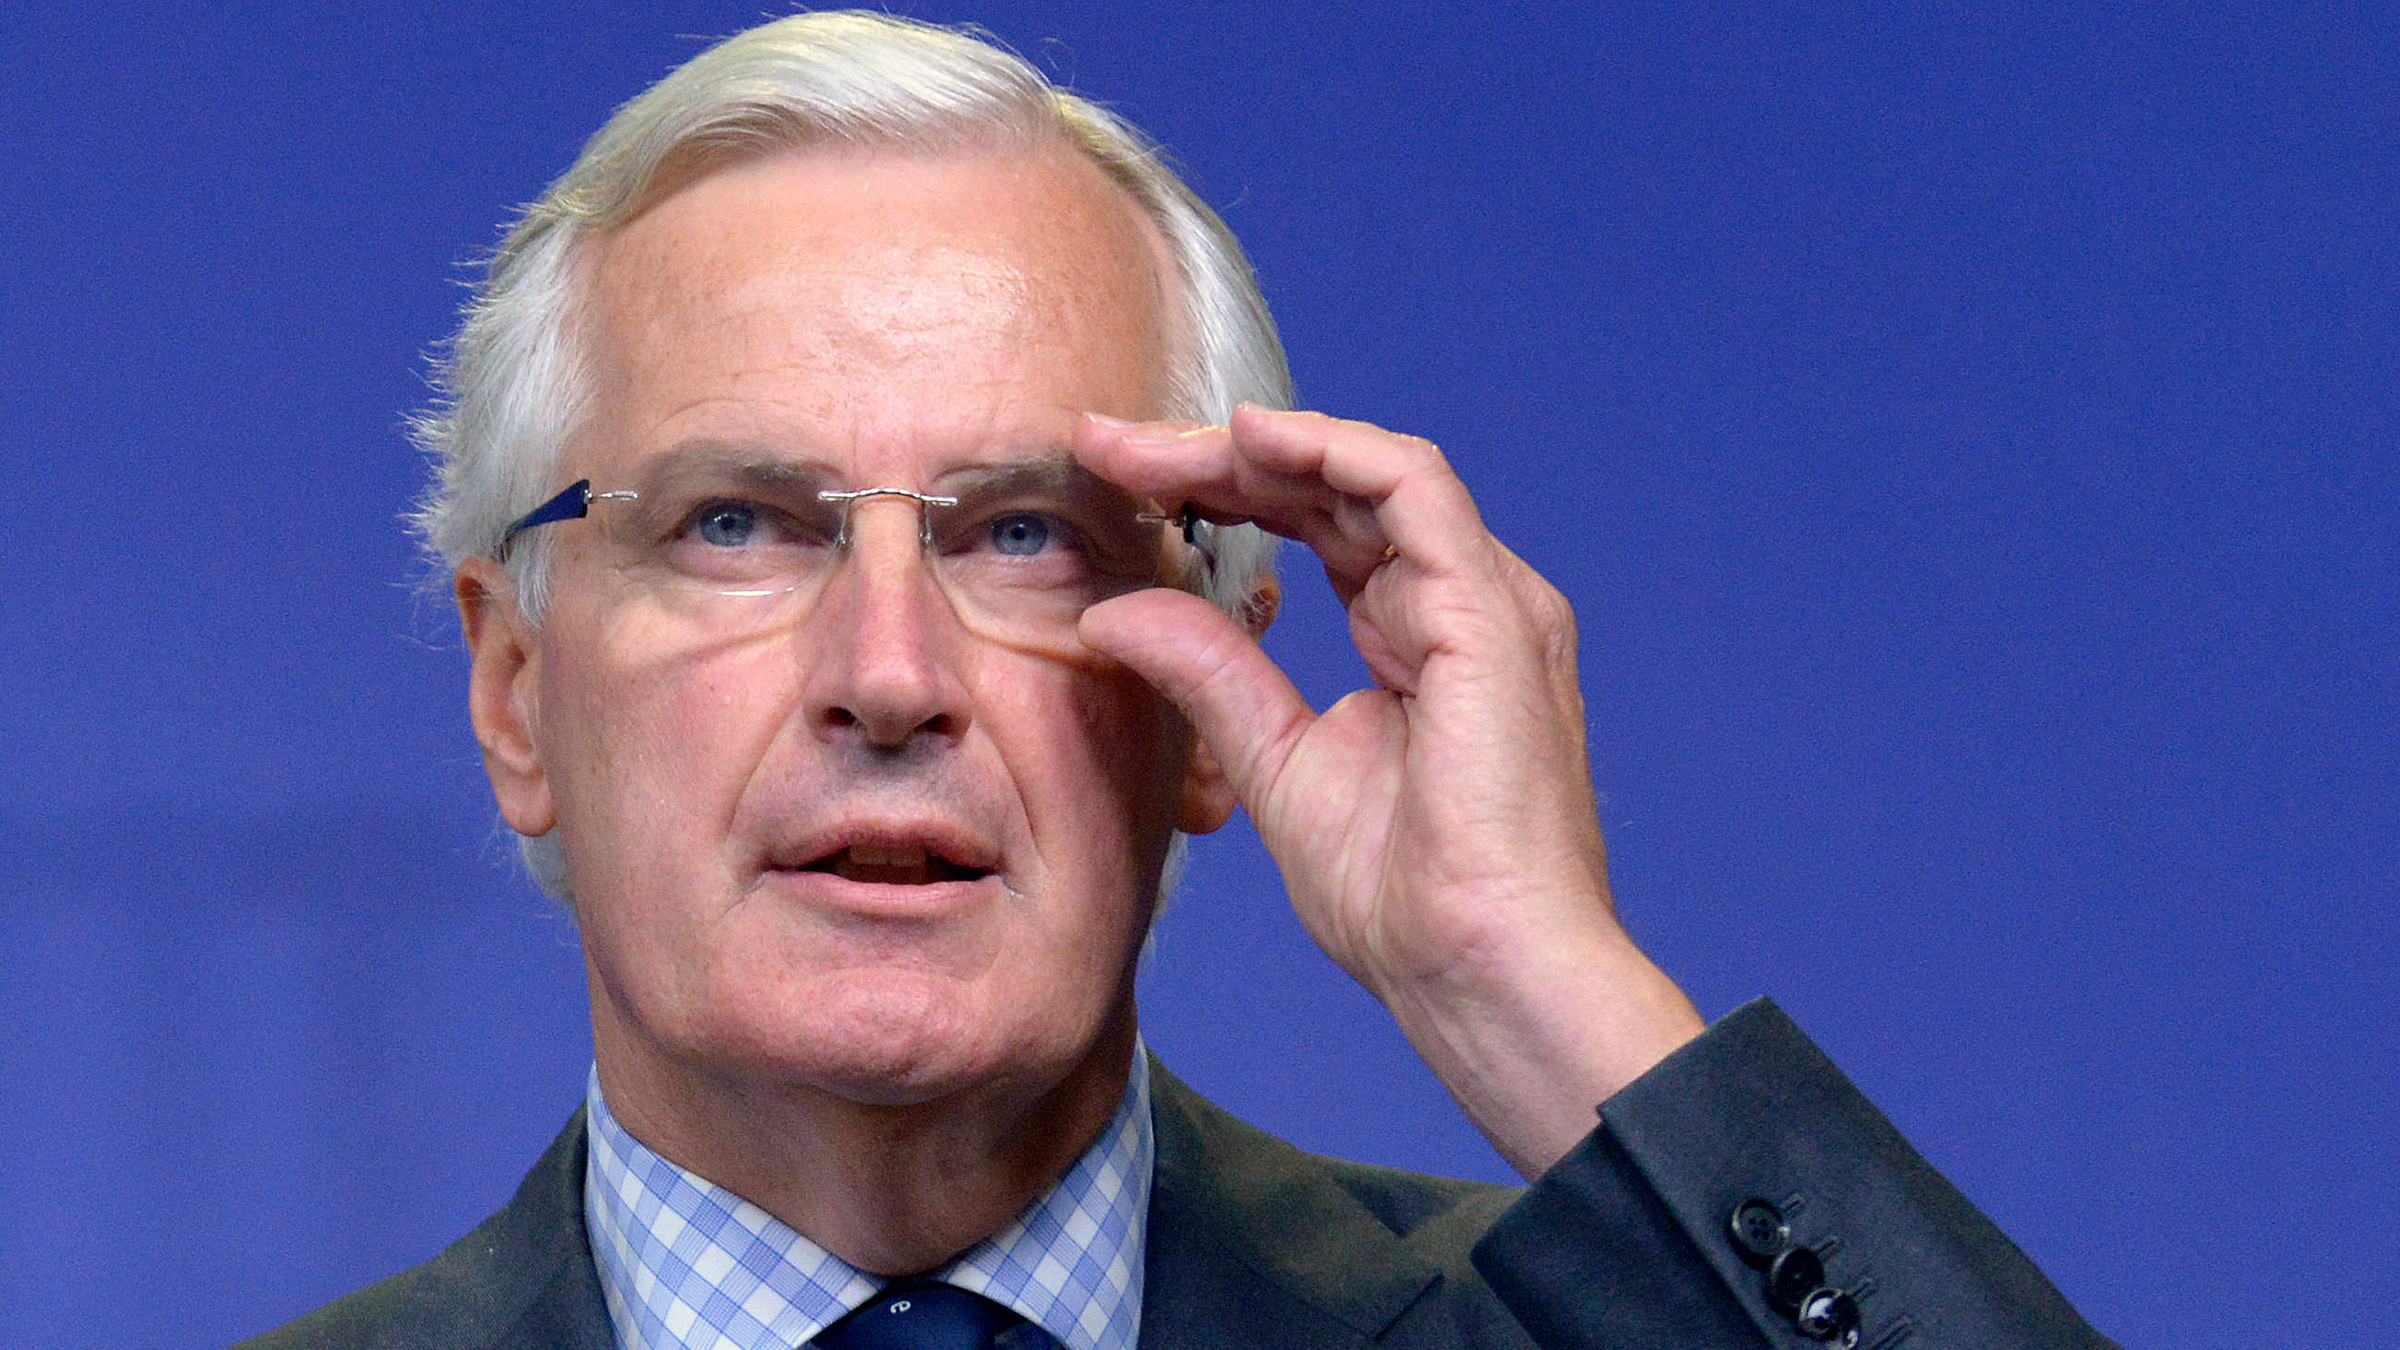 Michel Barnier shadow banking